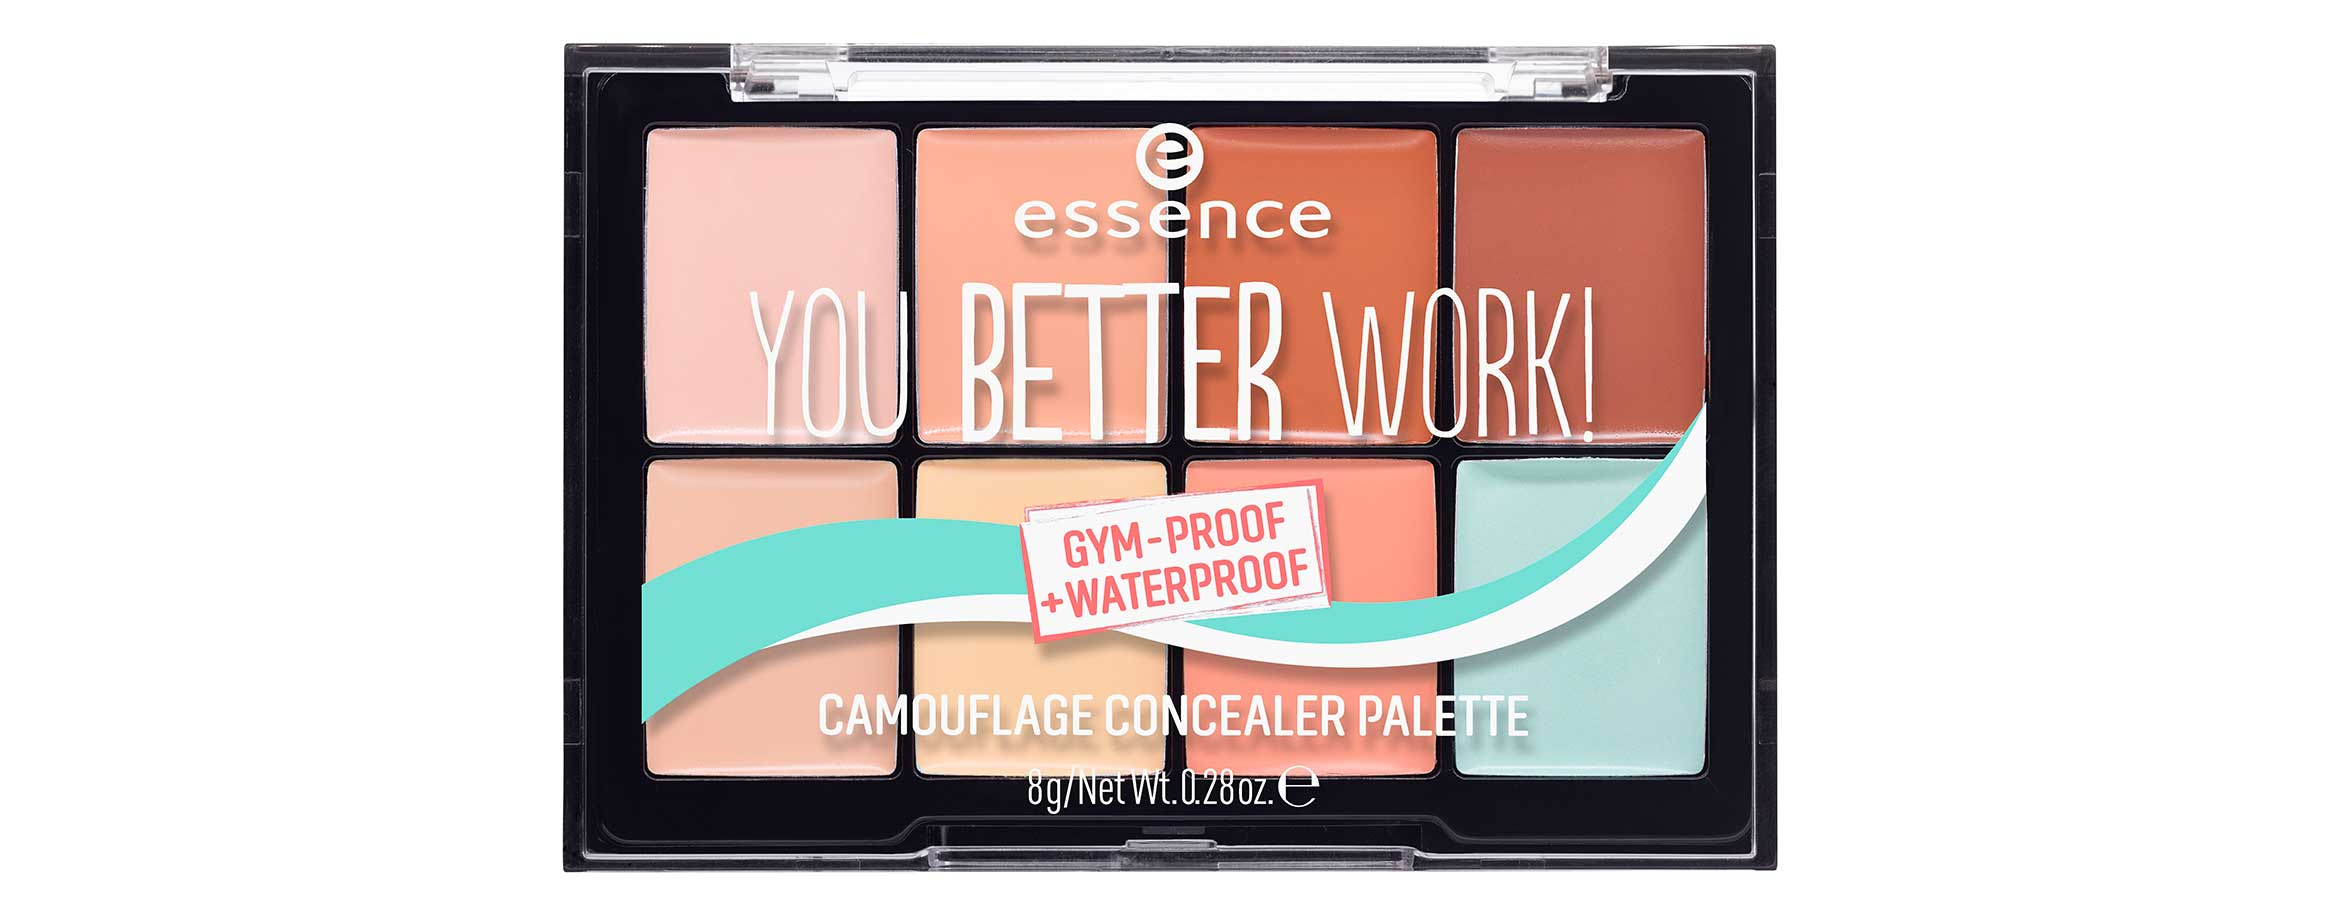 essence-you-better-work-camouflage-concealer-palette-collectie-2019